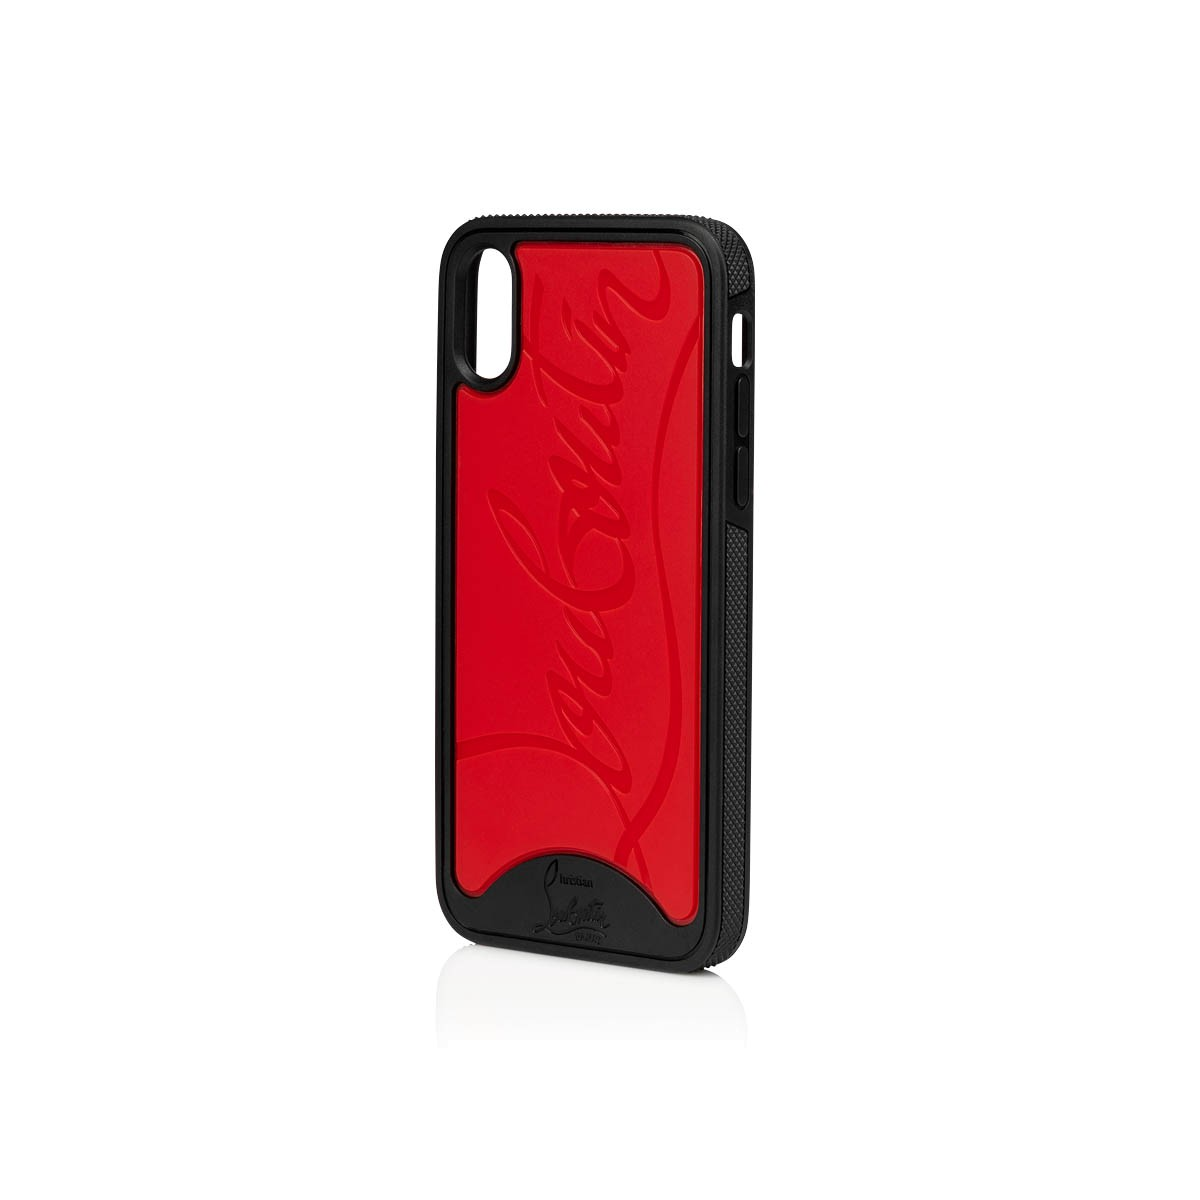 Small Leather Goods - Loubiphone Sneakers Iphone Case X/xs - Christian Louboutin